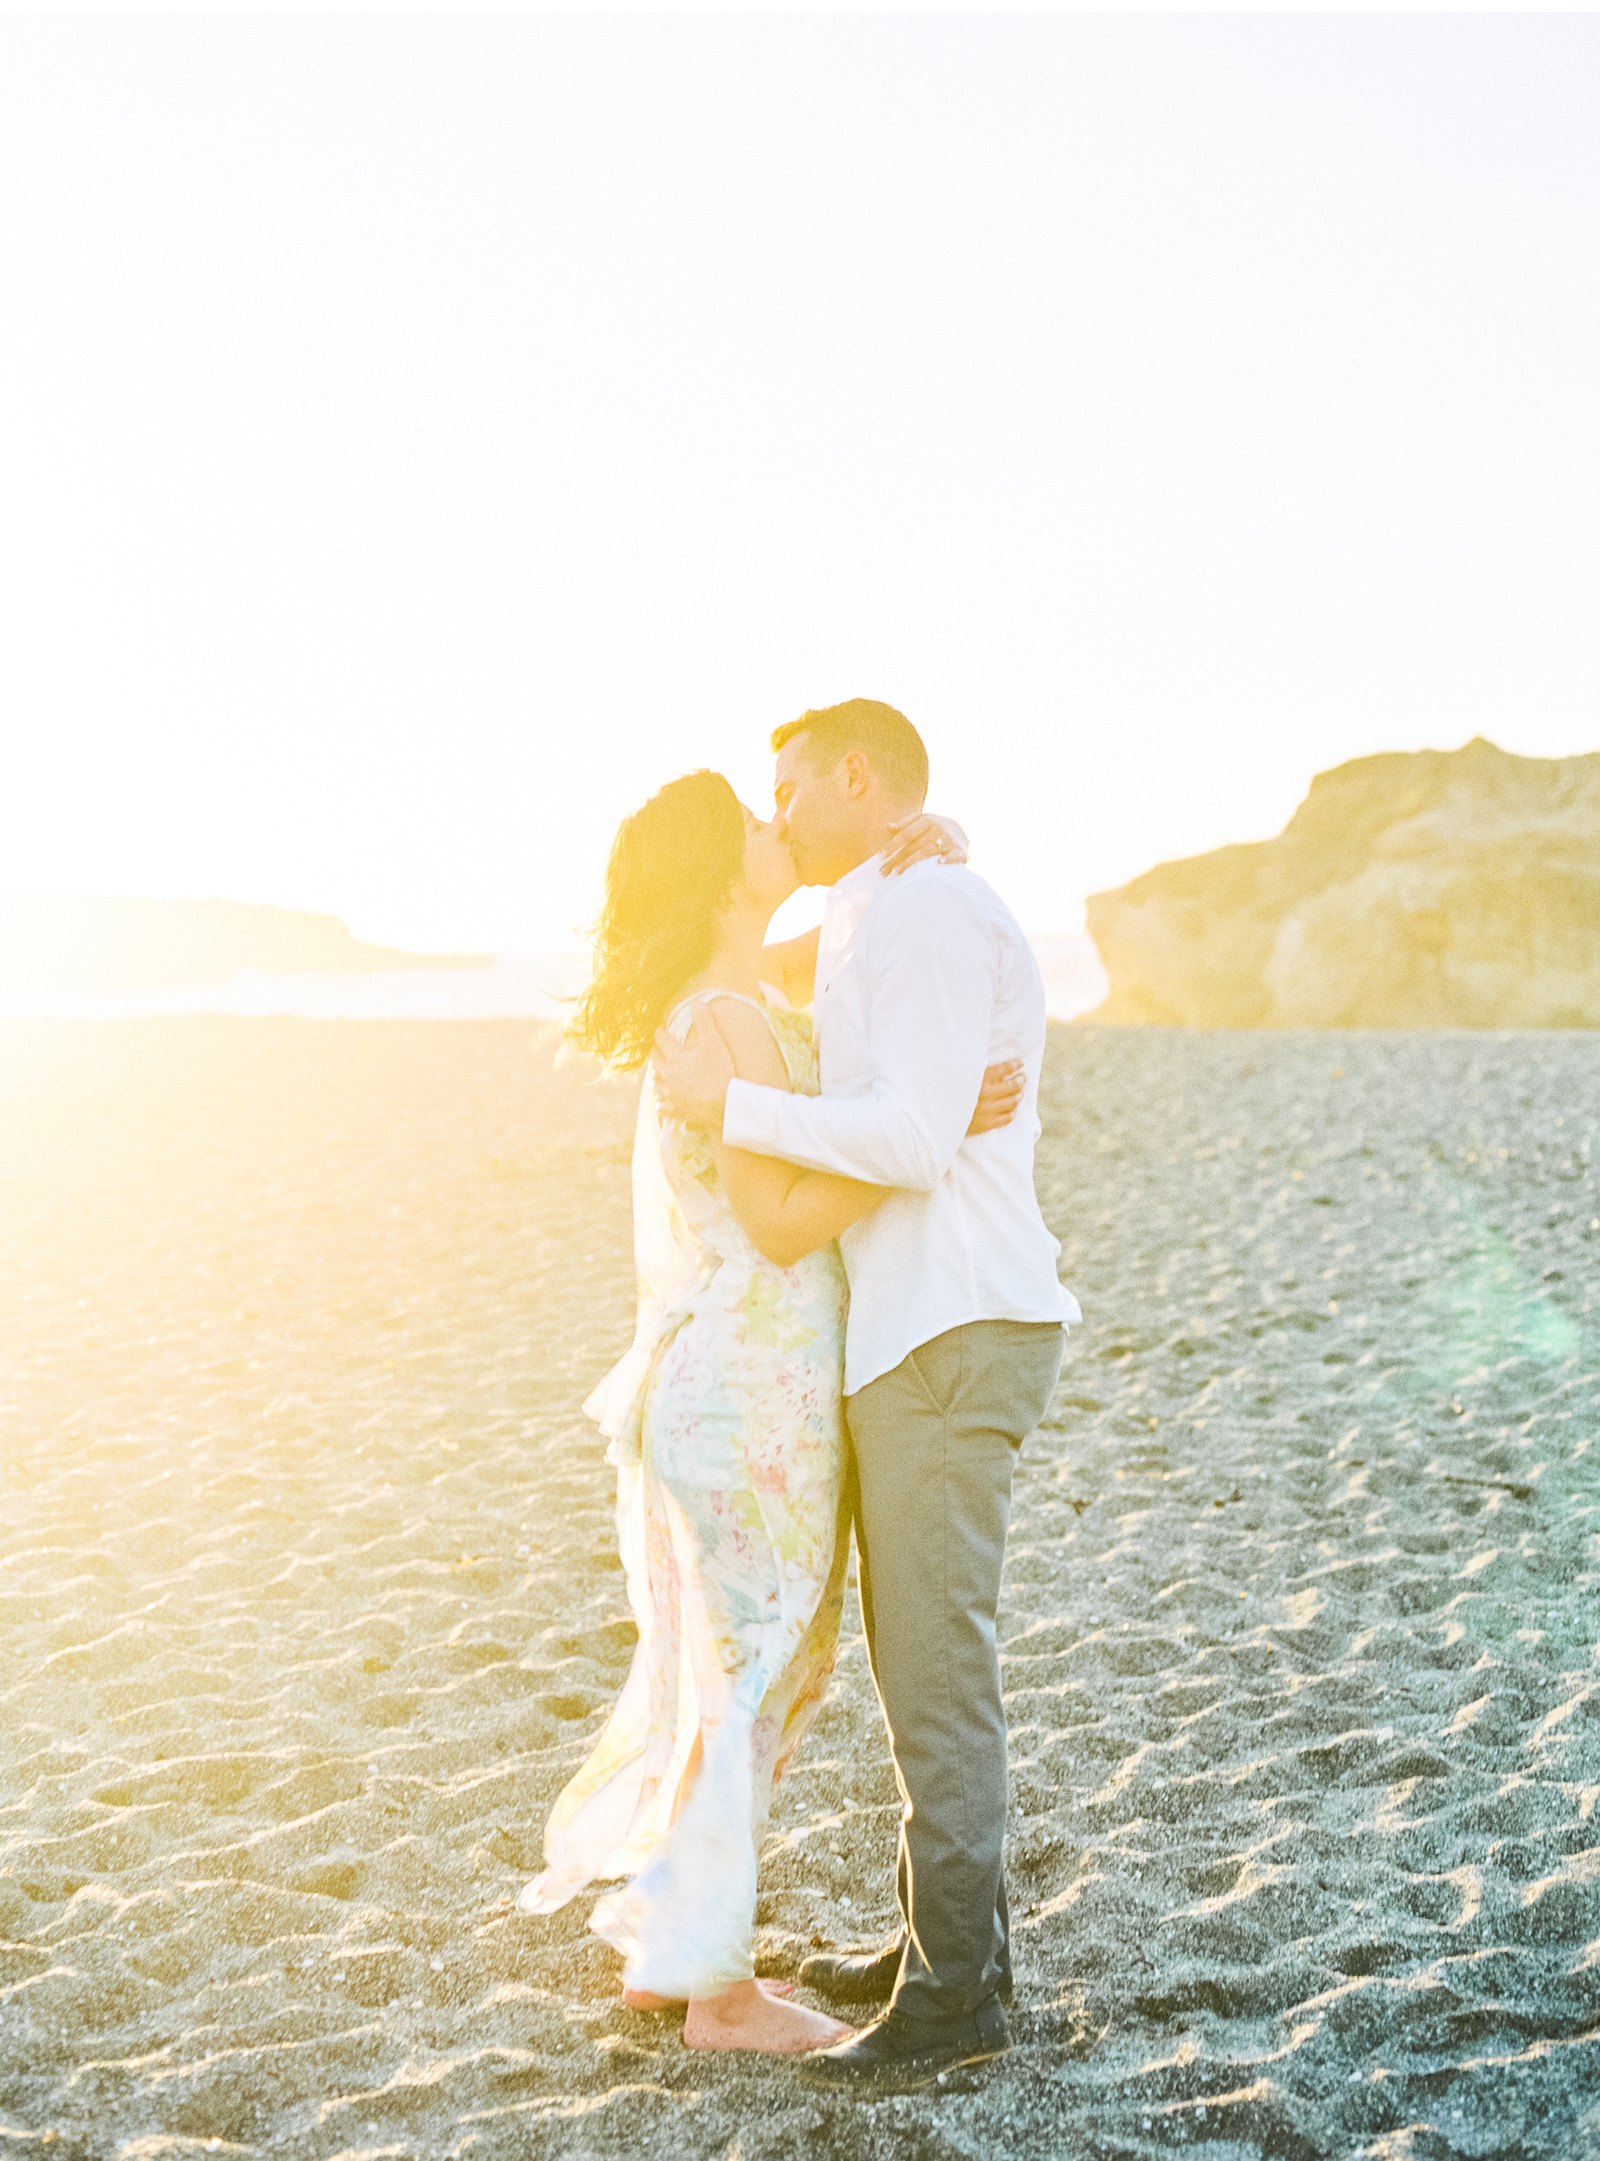 Natalie-Schutt-Photography-Malibu-Engagements-Malibu-Wedding-Beachside-Wedding-Fine-Art-Wedding-Photography-Southern-California-Brides_06.jpg